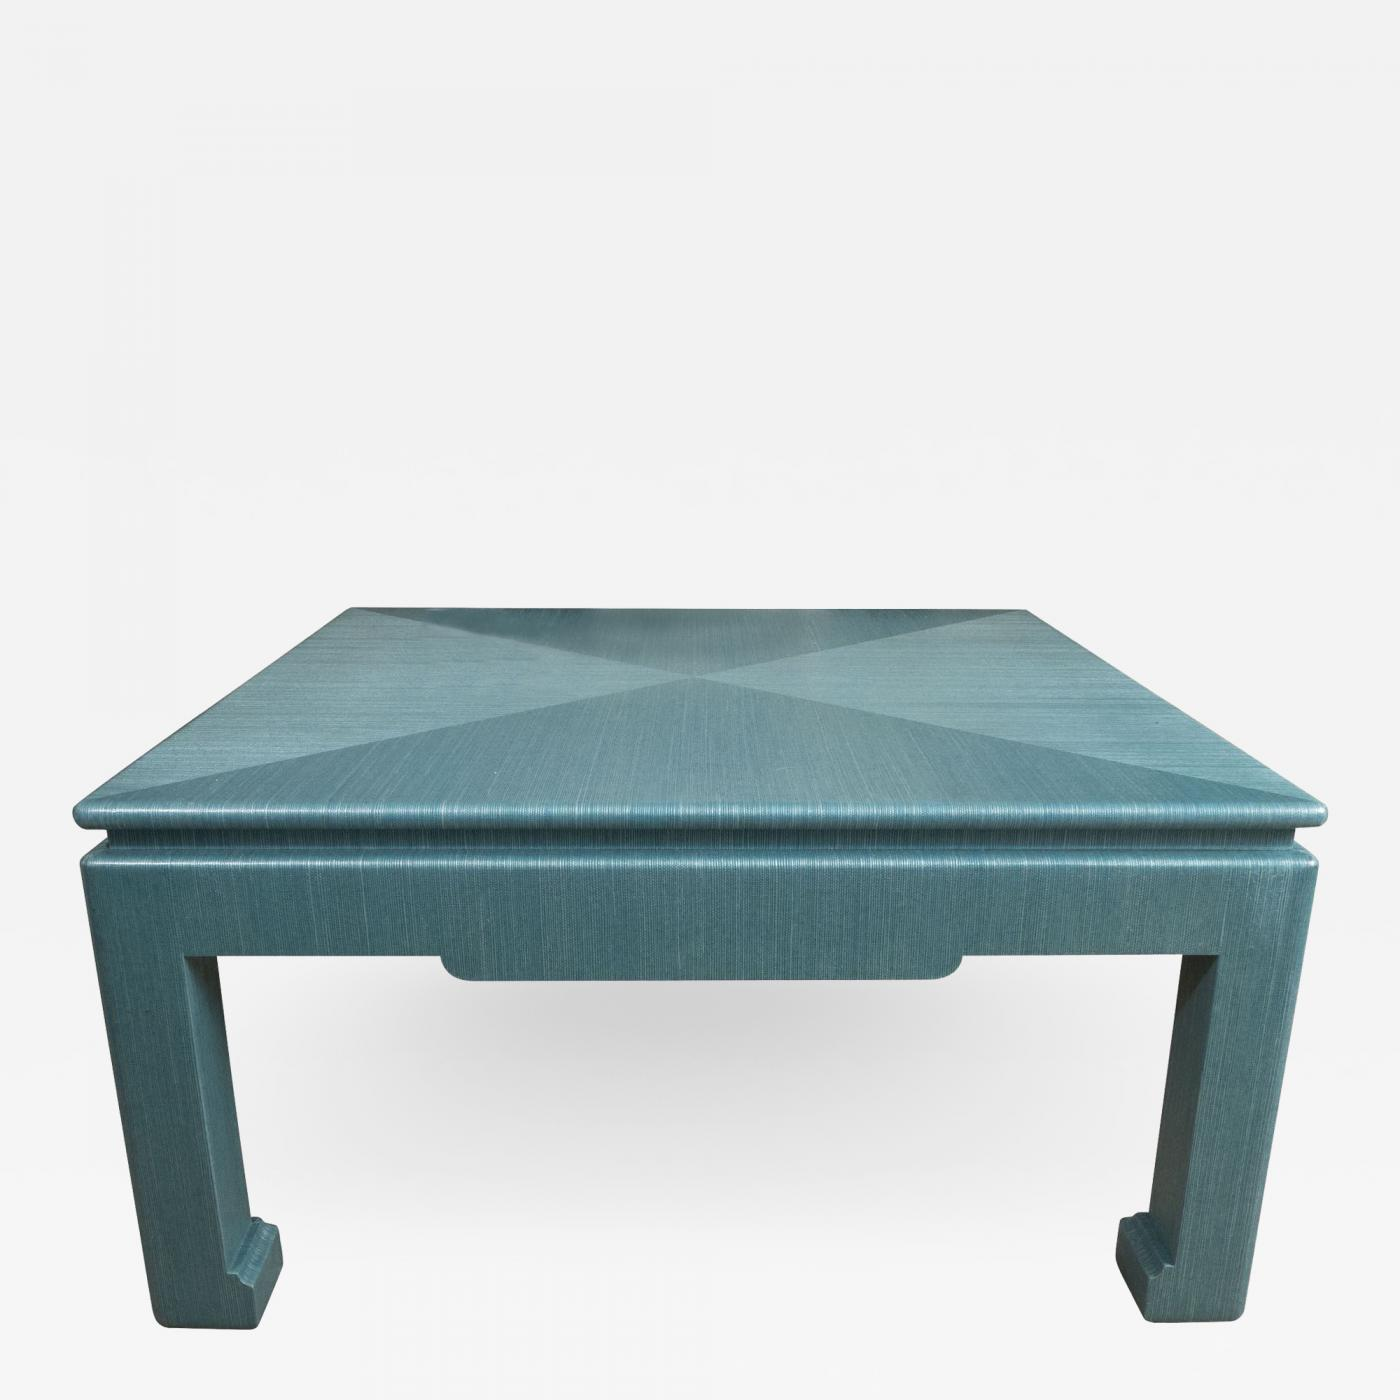 Surprising Custom Turquoise Grasscloth Wrapped Cocktail Table Bralicious Painted Fabric Chair Ideas Braliciousco